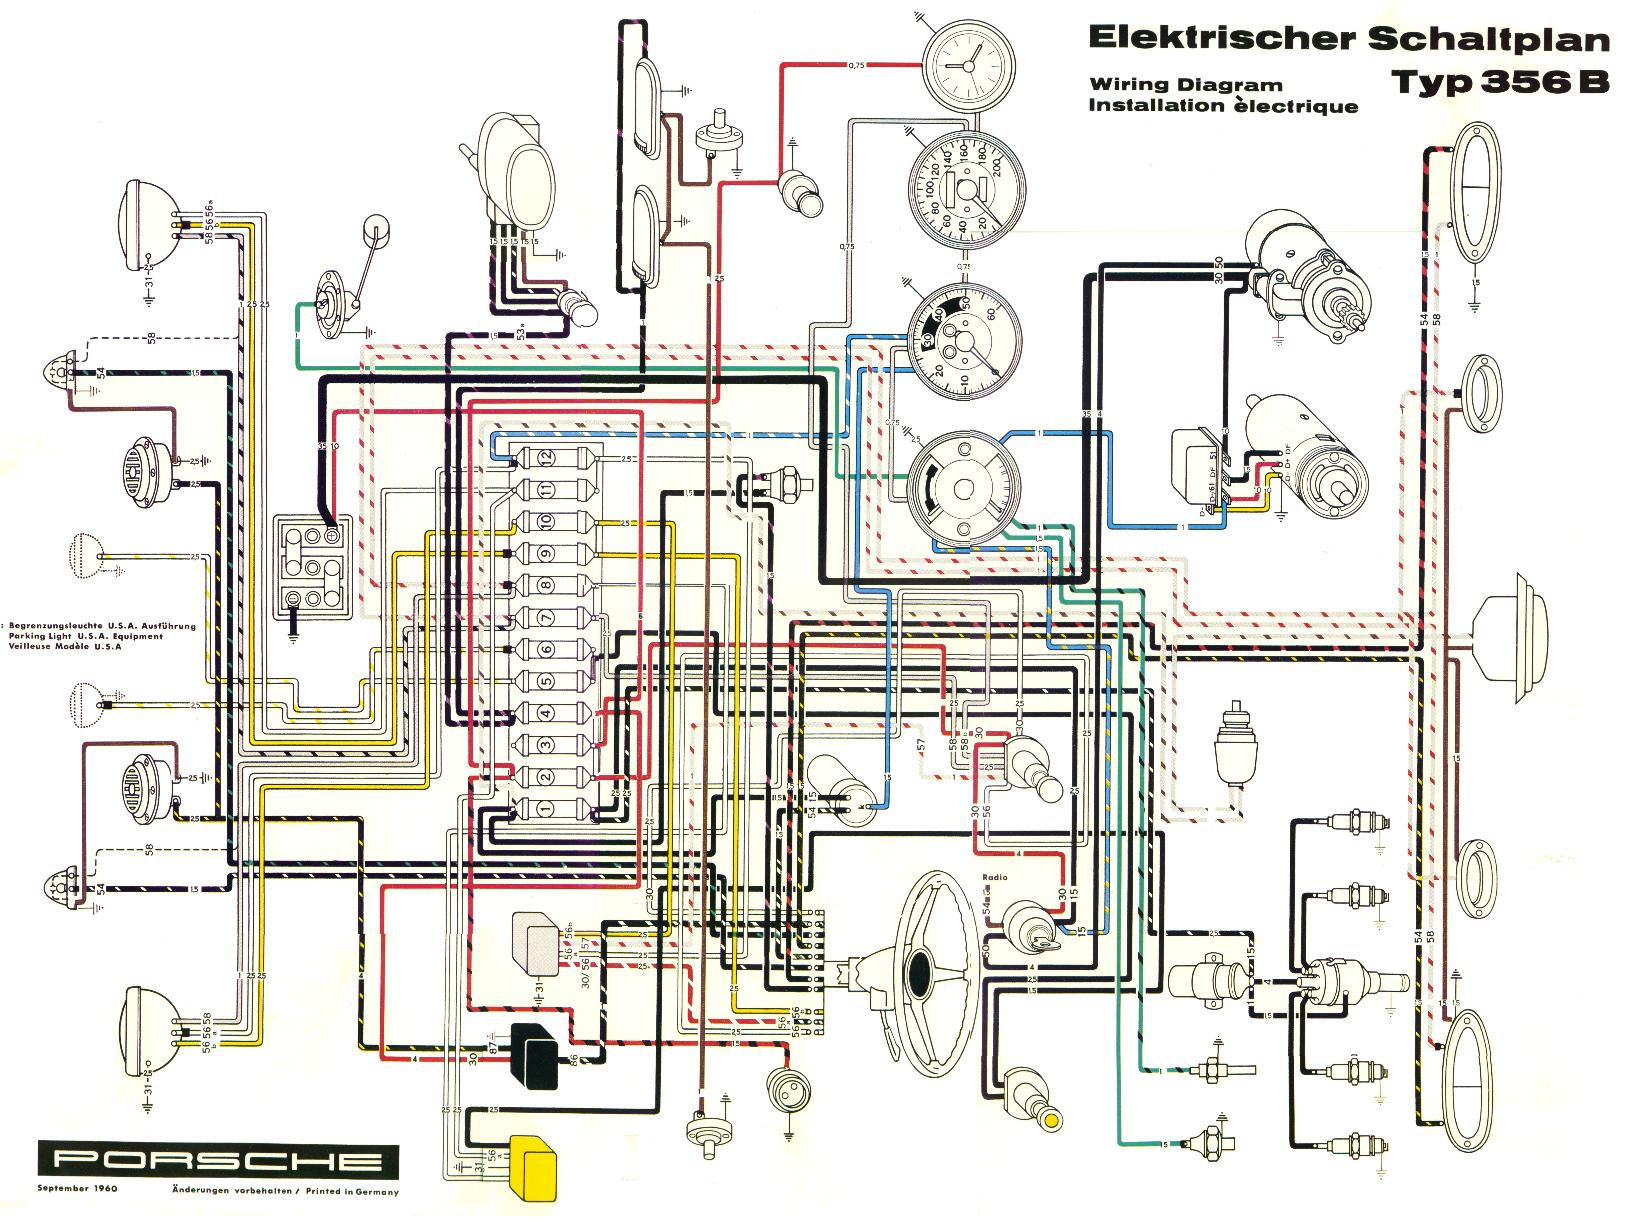 1975 Volkswagen Wiring Diagram Porsche 911 Data 356 1972 Rs